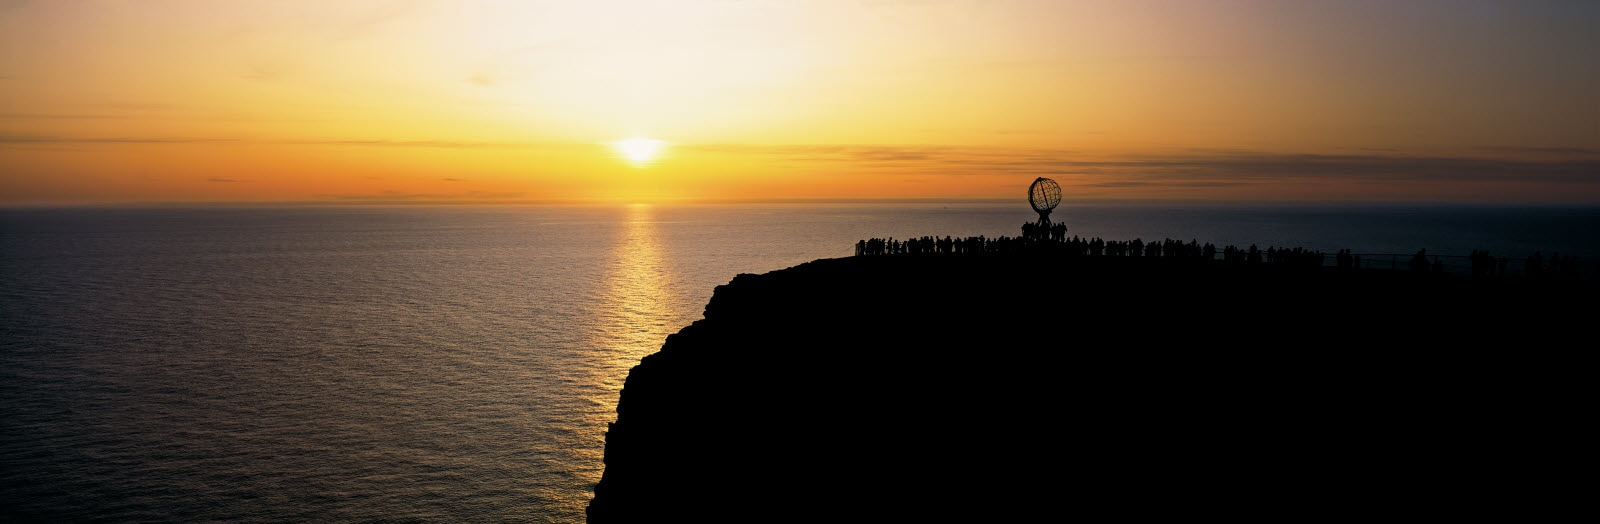 Midnightsun at North Cape